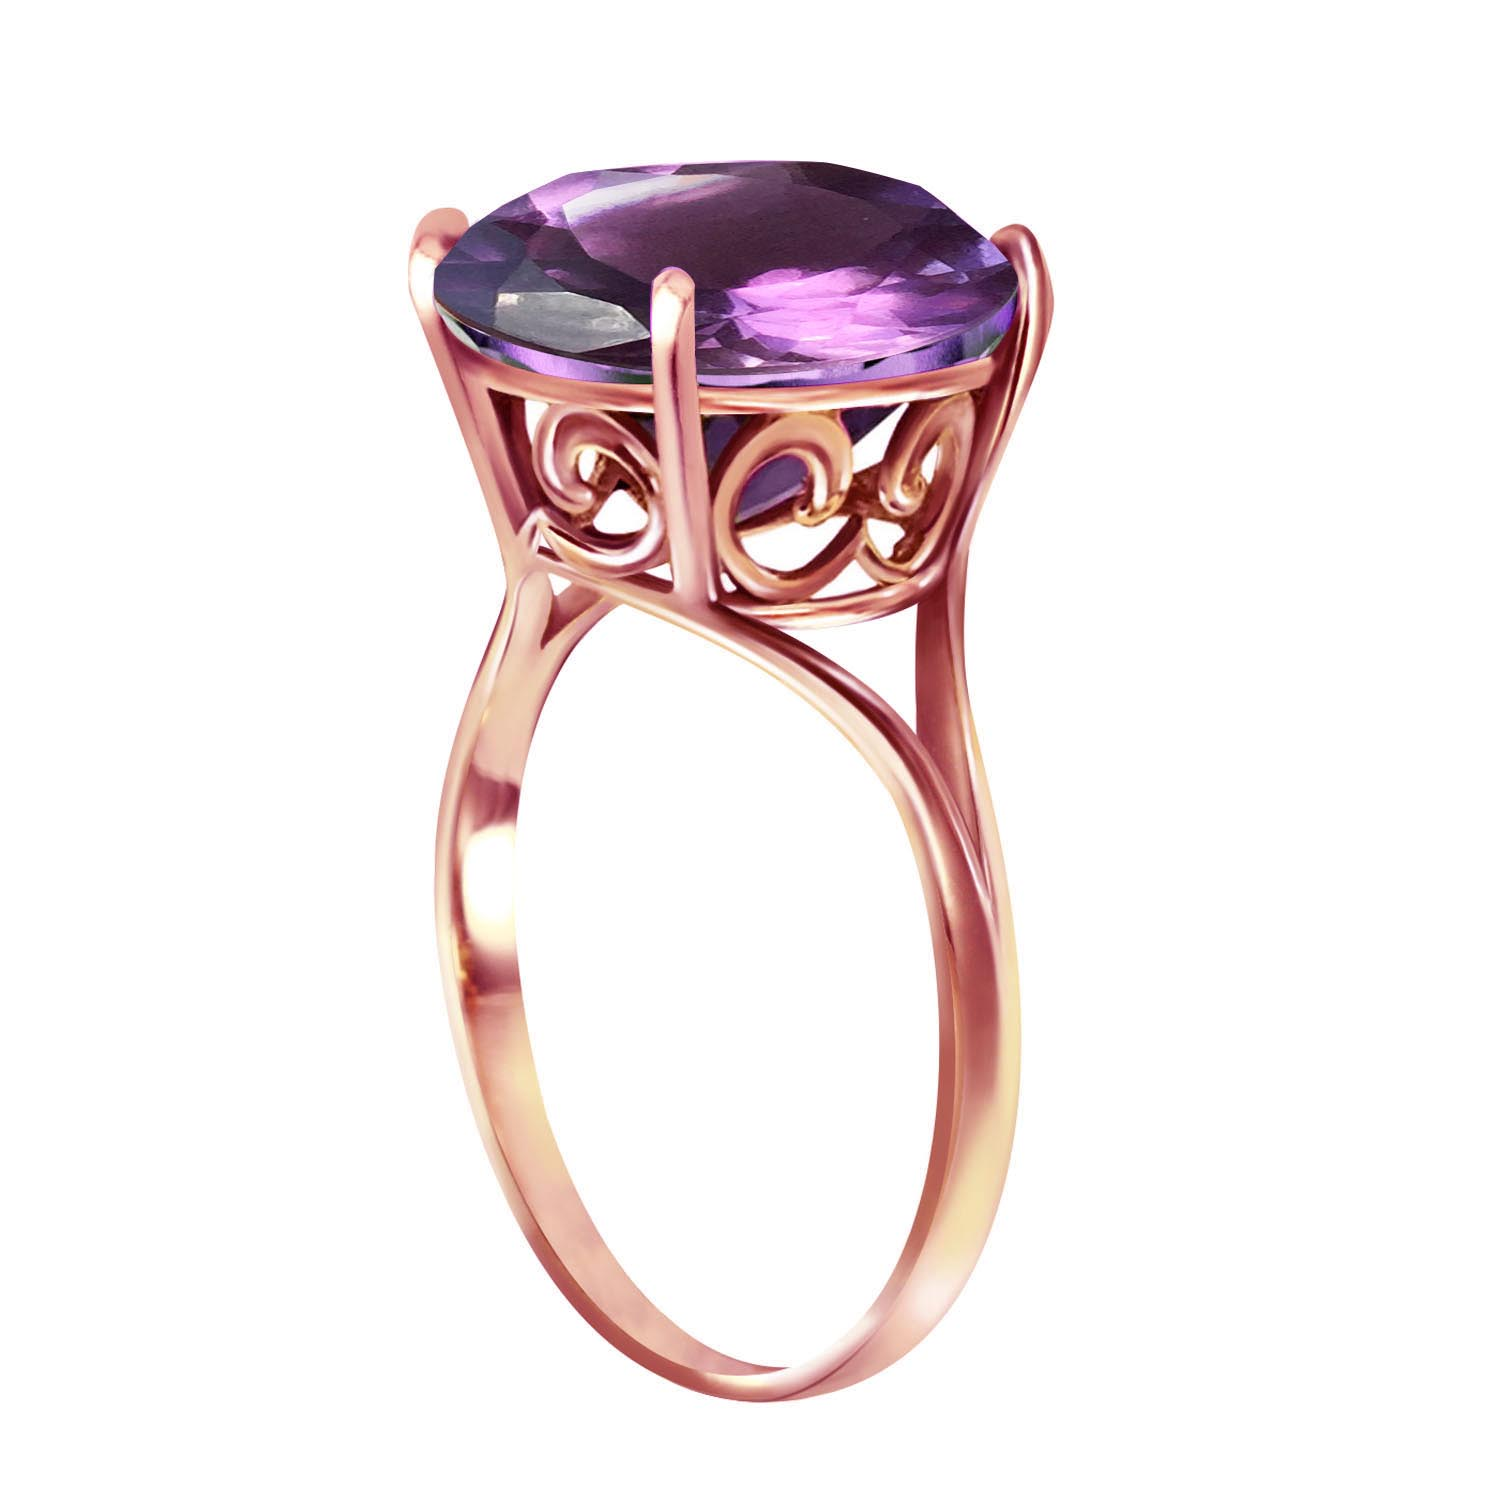 Round Brilliant Cut Amethyst Ring 5.5ct in 9ct Rose Gold